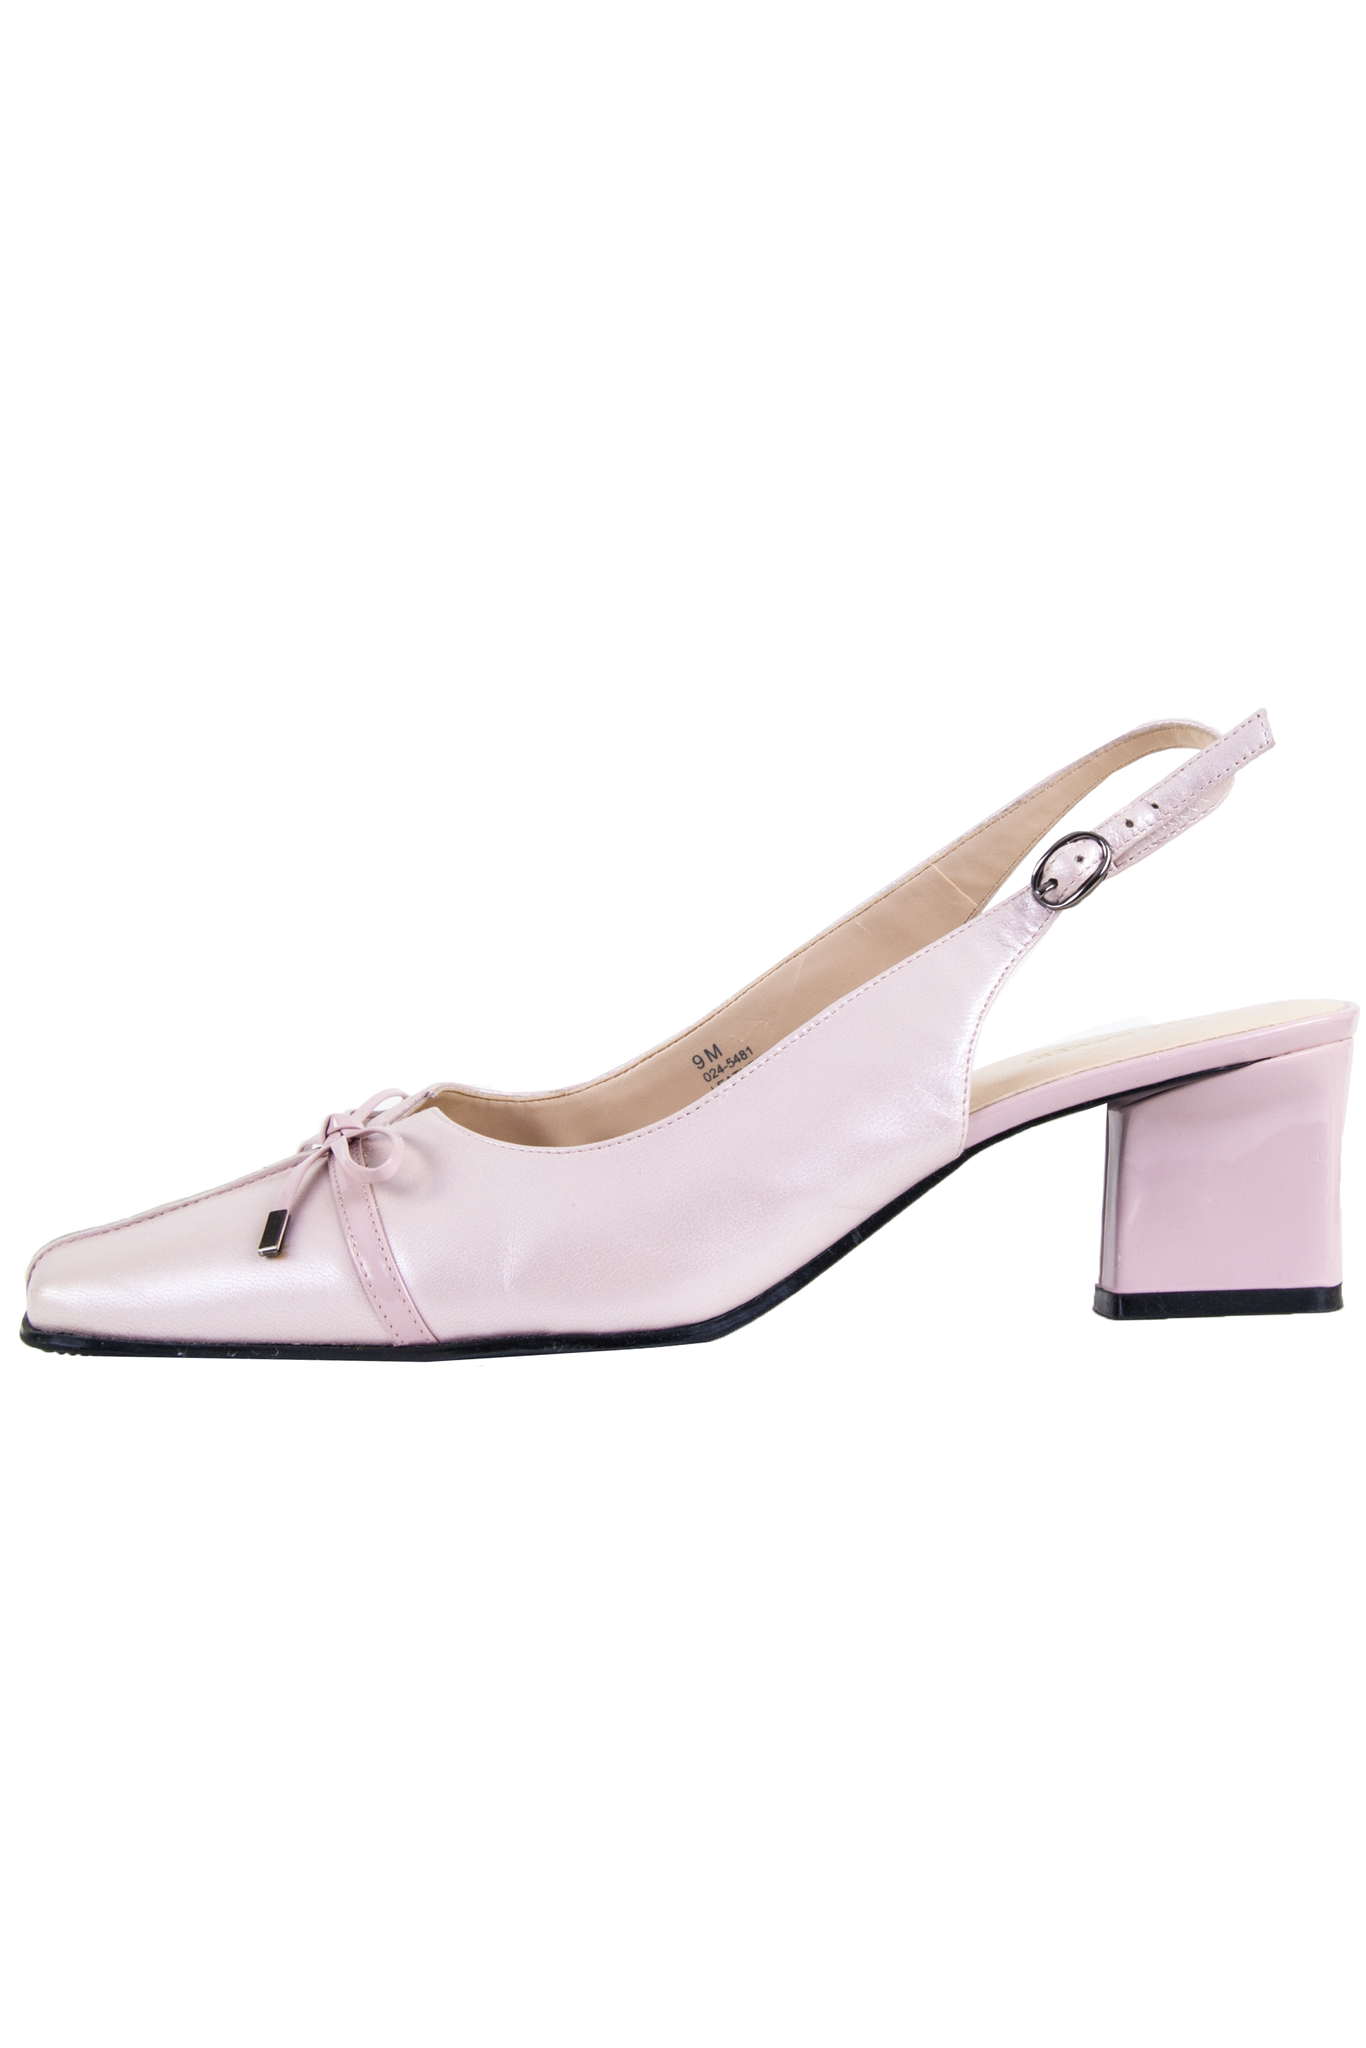 vintage pearly pink slingback mules